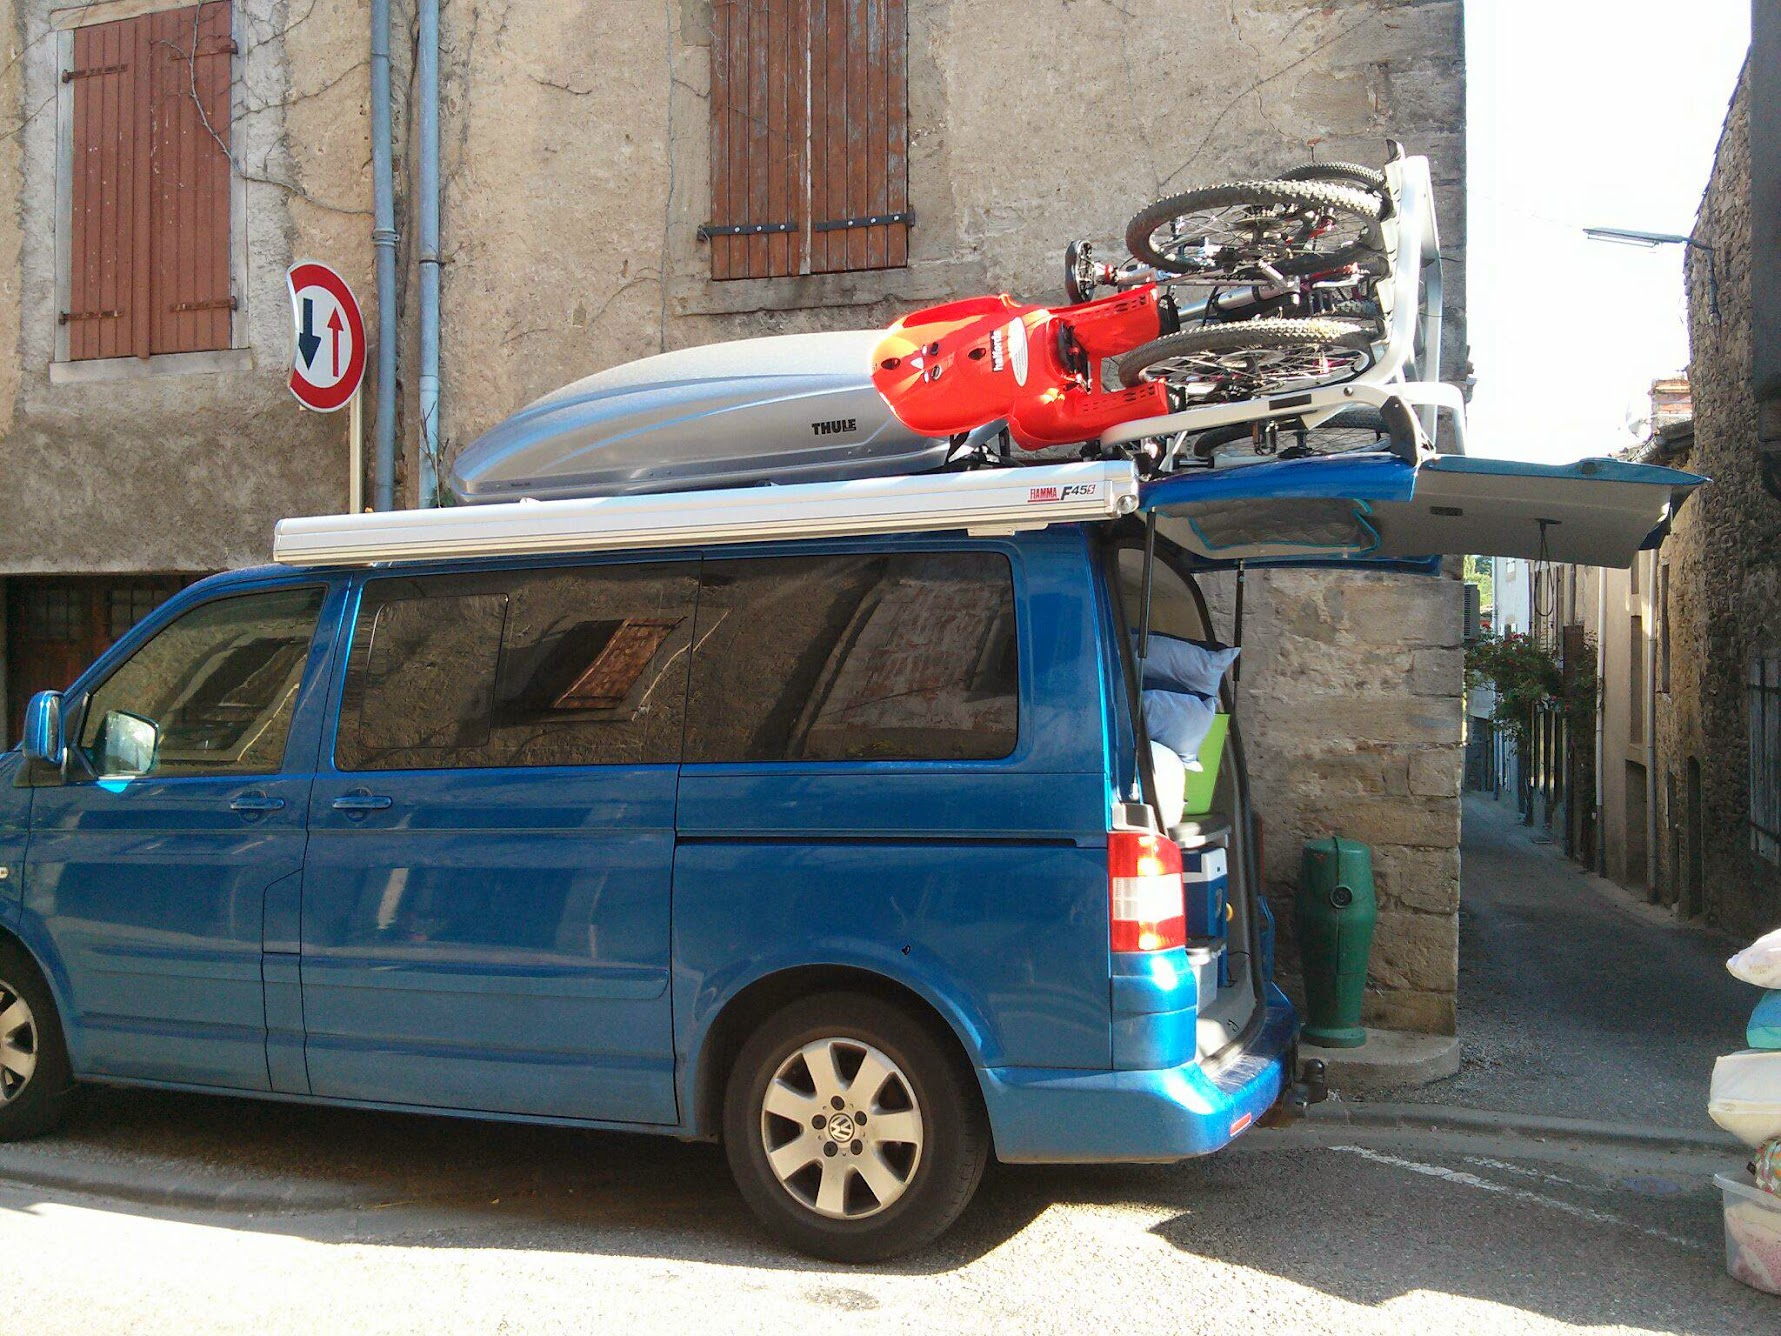 Vw T5 Caravelle 2004 Olympic Blue With Lots Of Camping